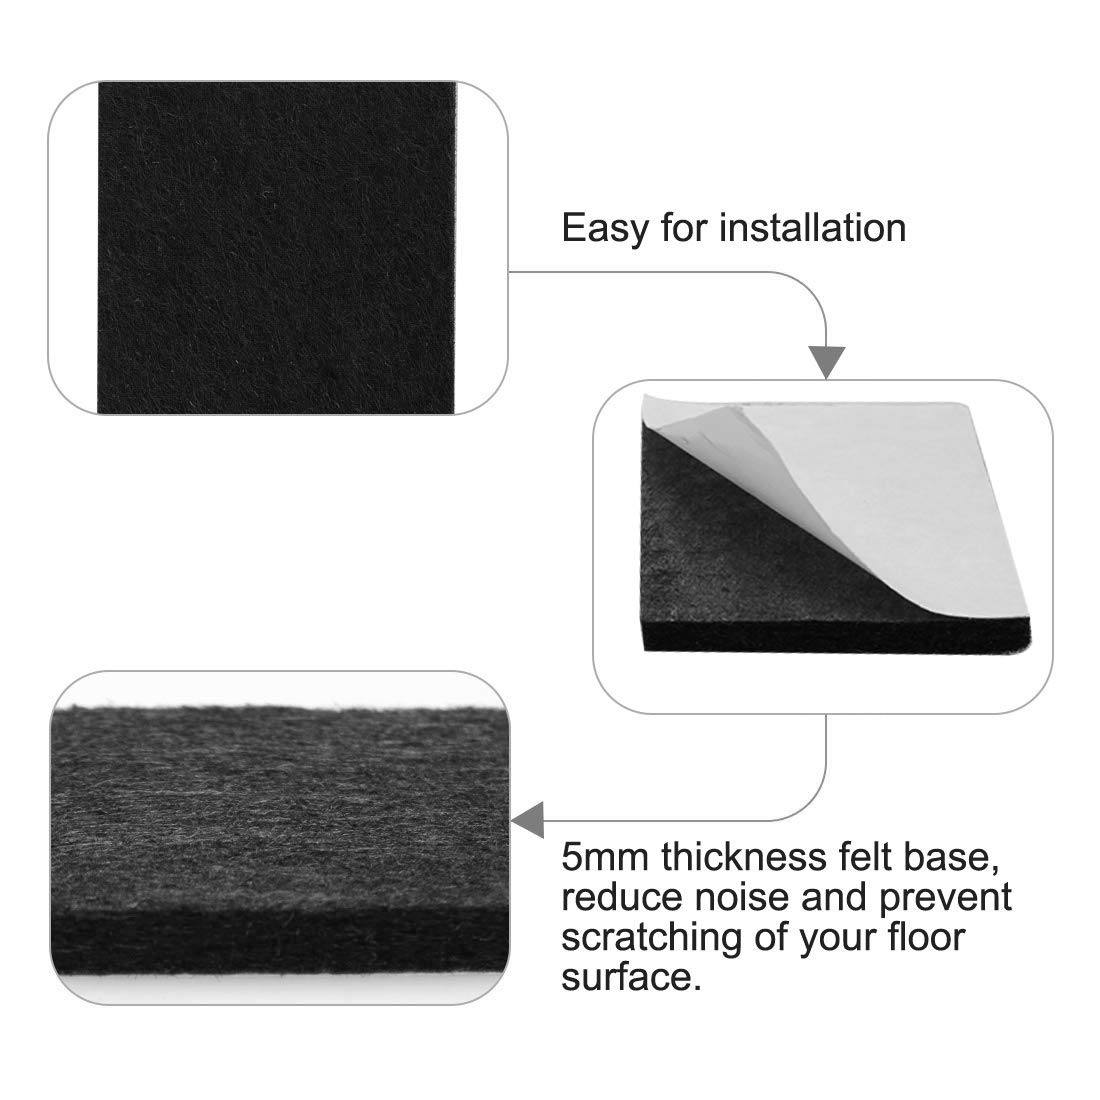 sourcing map 8pcs Furniture Felt Pads Square 1 Self-Stick Anti-Scratch Pads for Sofa Table Chair Feet Floor Protector Black